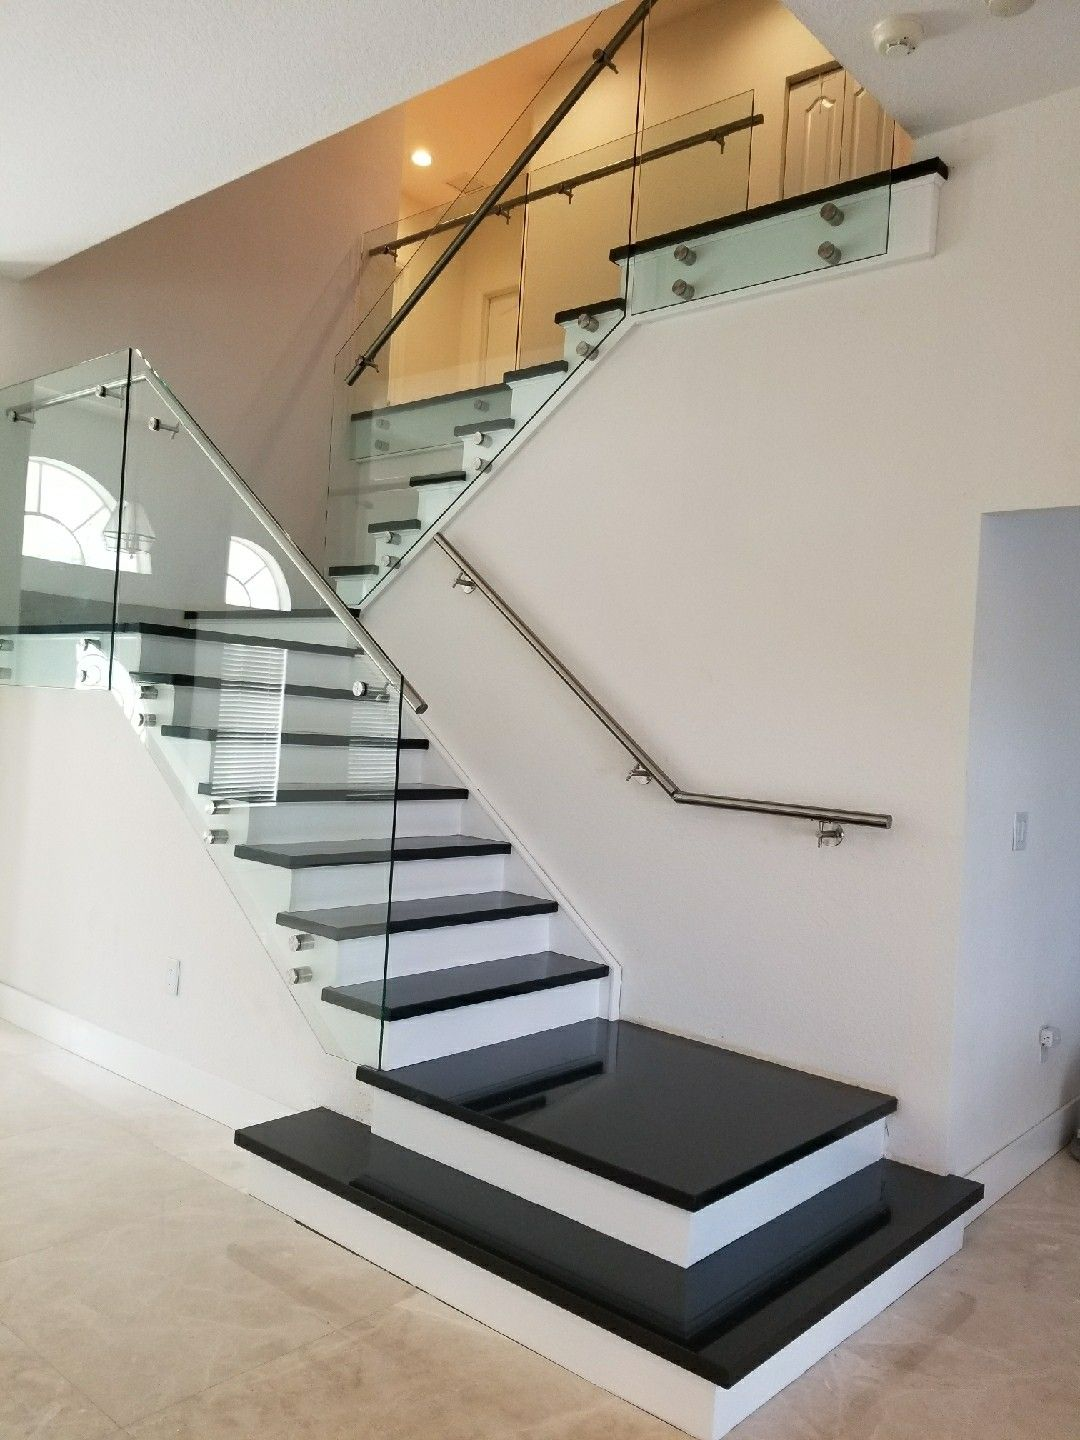 Stair In Black Absolute Granite Home Stairs Design Stairs   Home Stairs And Railings   Craftsman   Low Cost   Easy Diy   Inexpensive   Beautiful